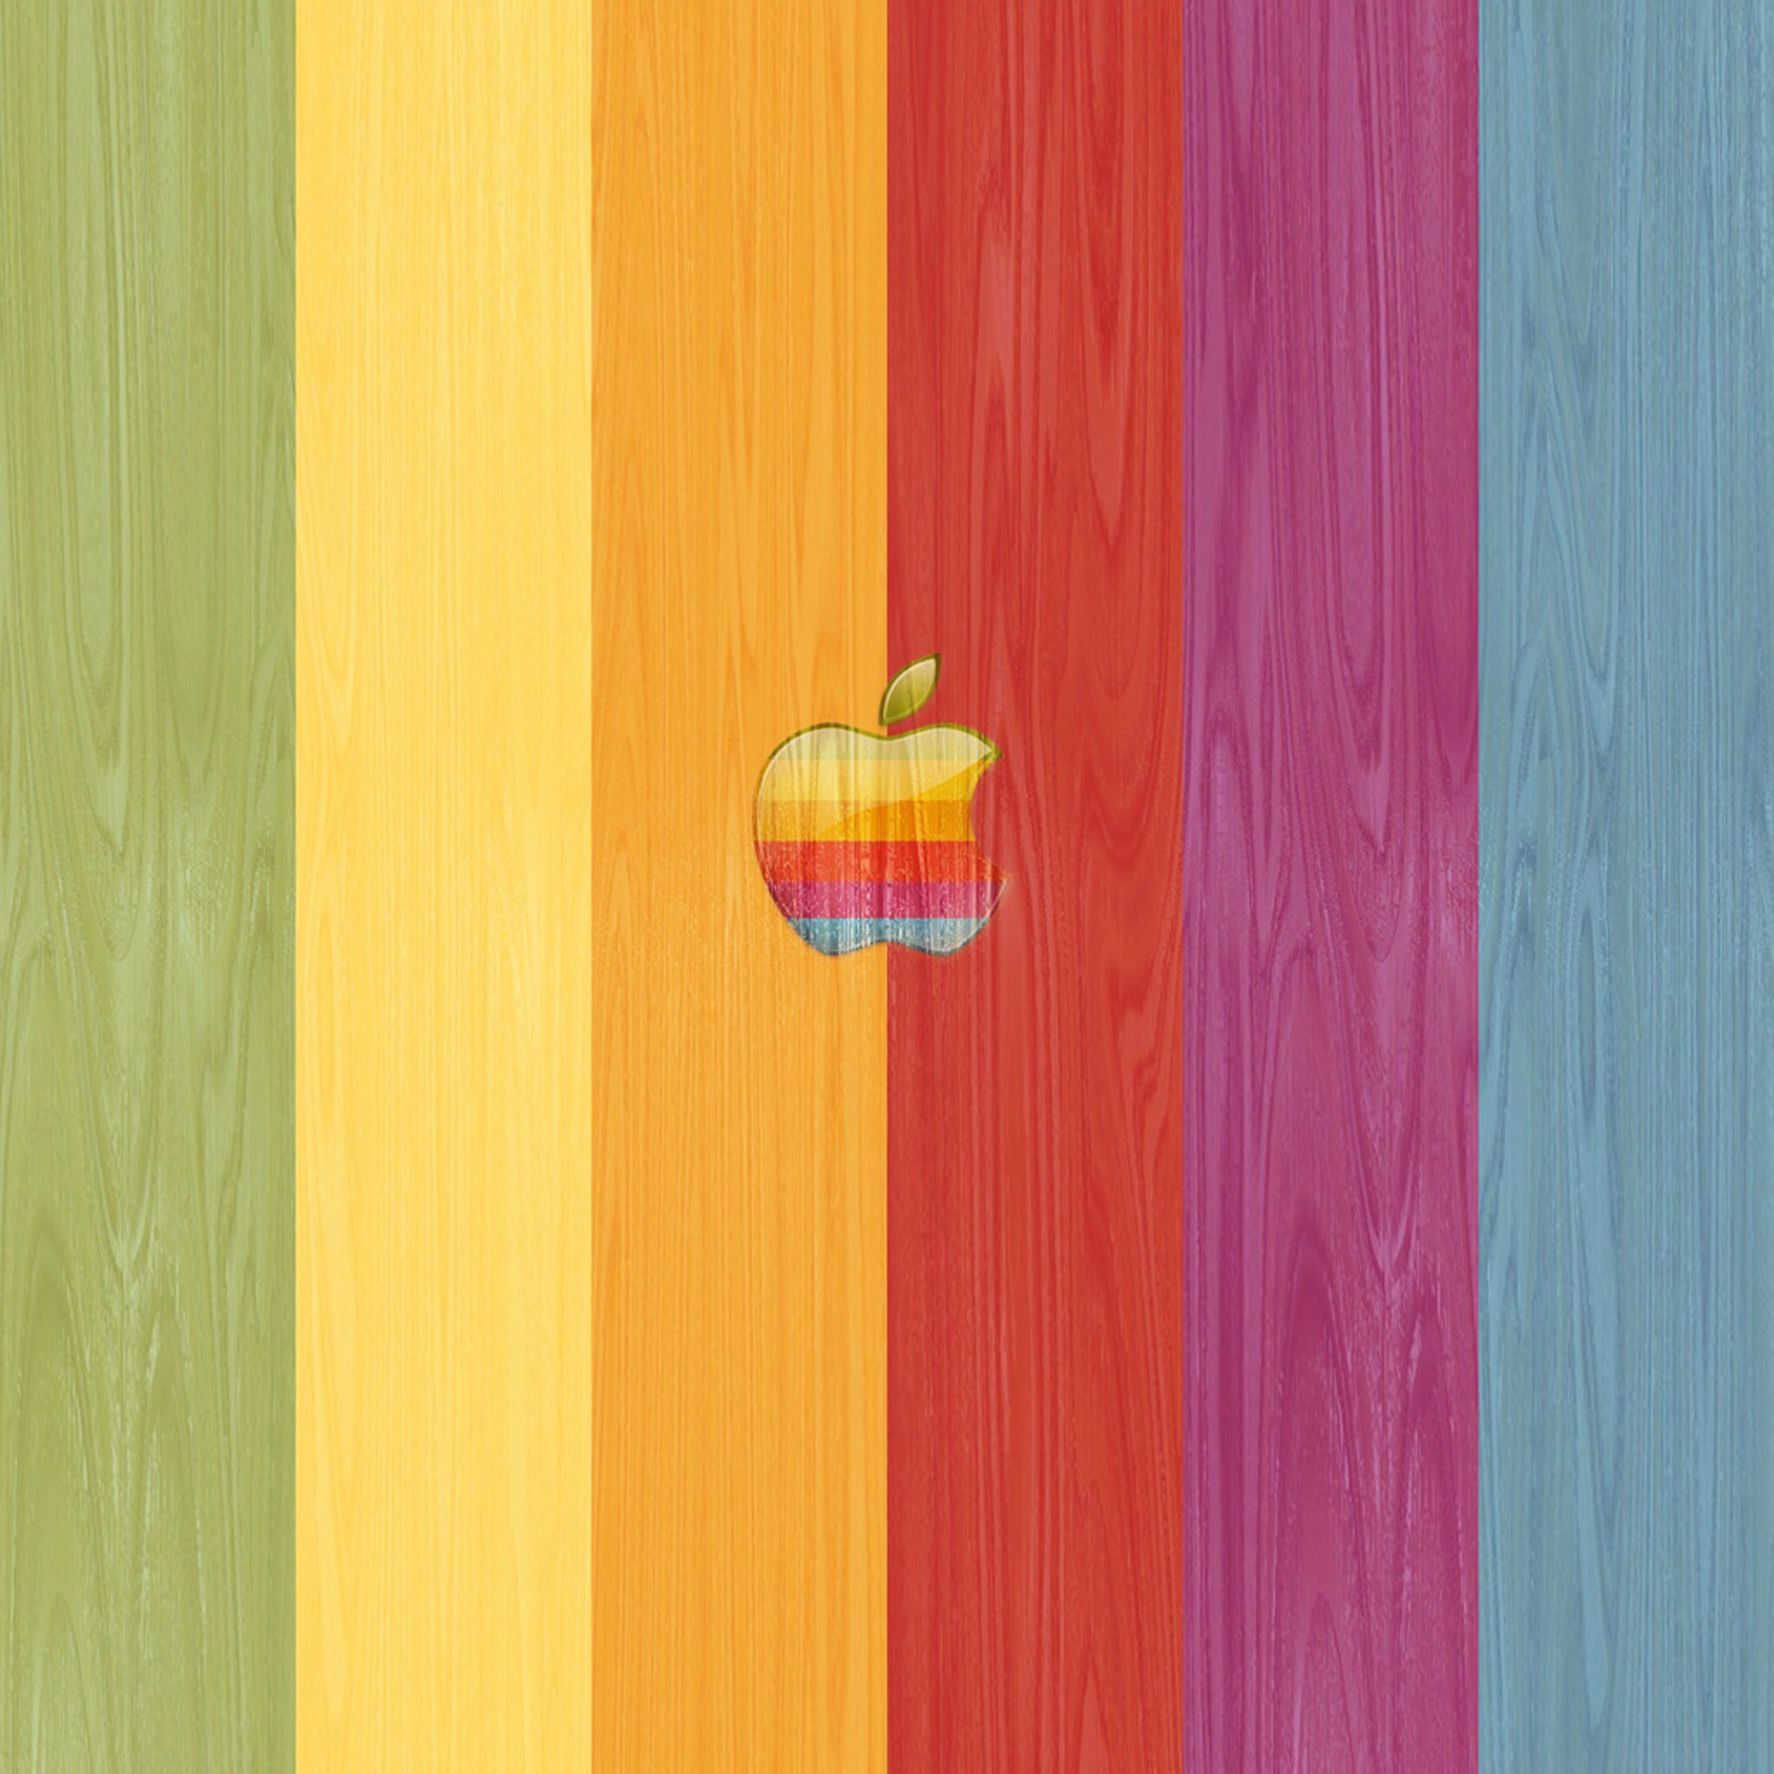 Pin by Hadys on iPhone/iPad Misc. Wallpapers Apple logo